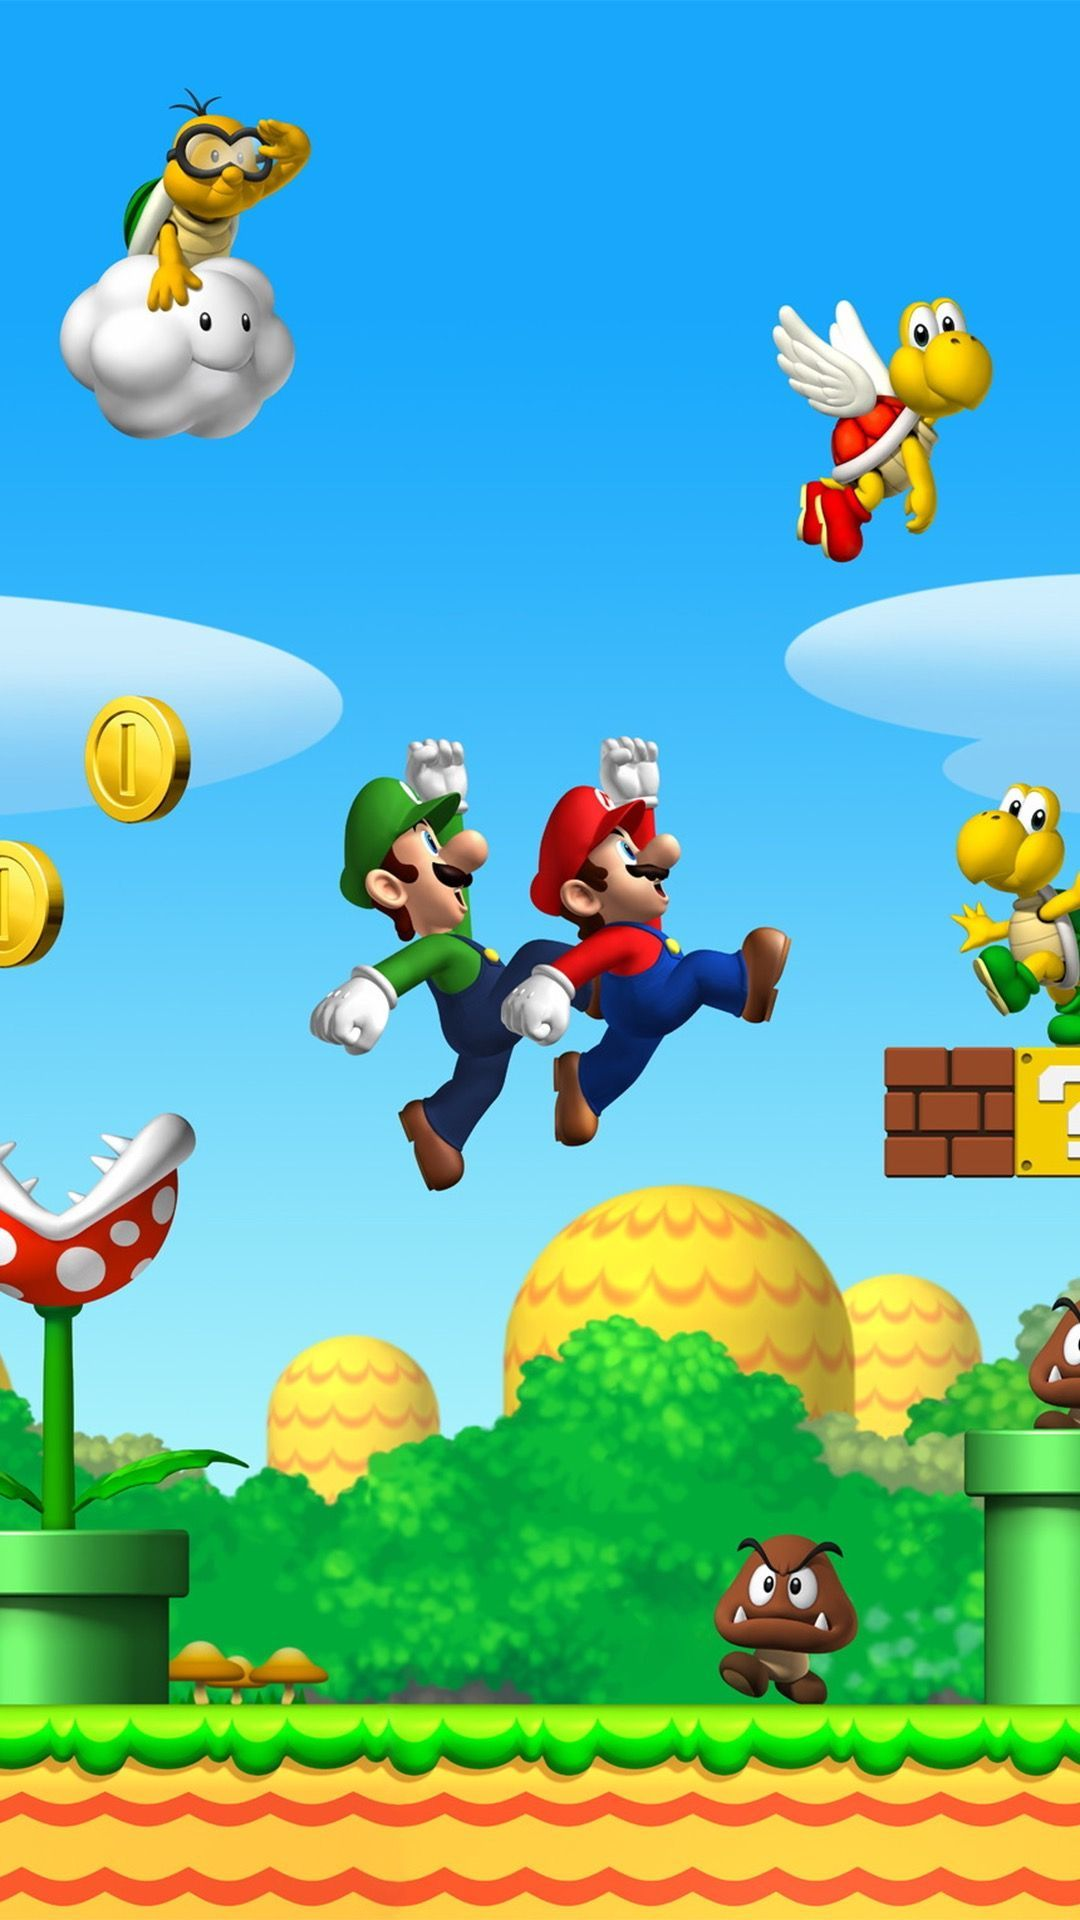 8 Bit Mario Iphone Background Games Wallpapers Ideas In 2020